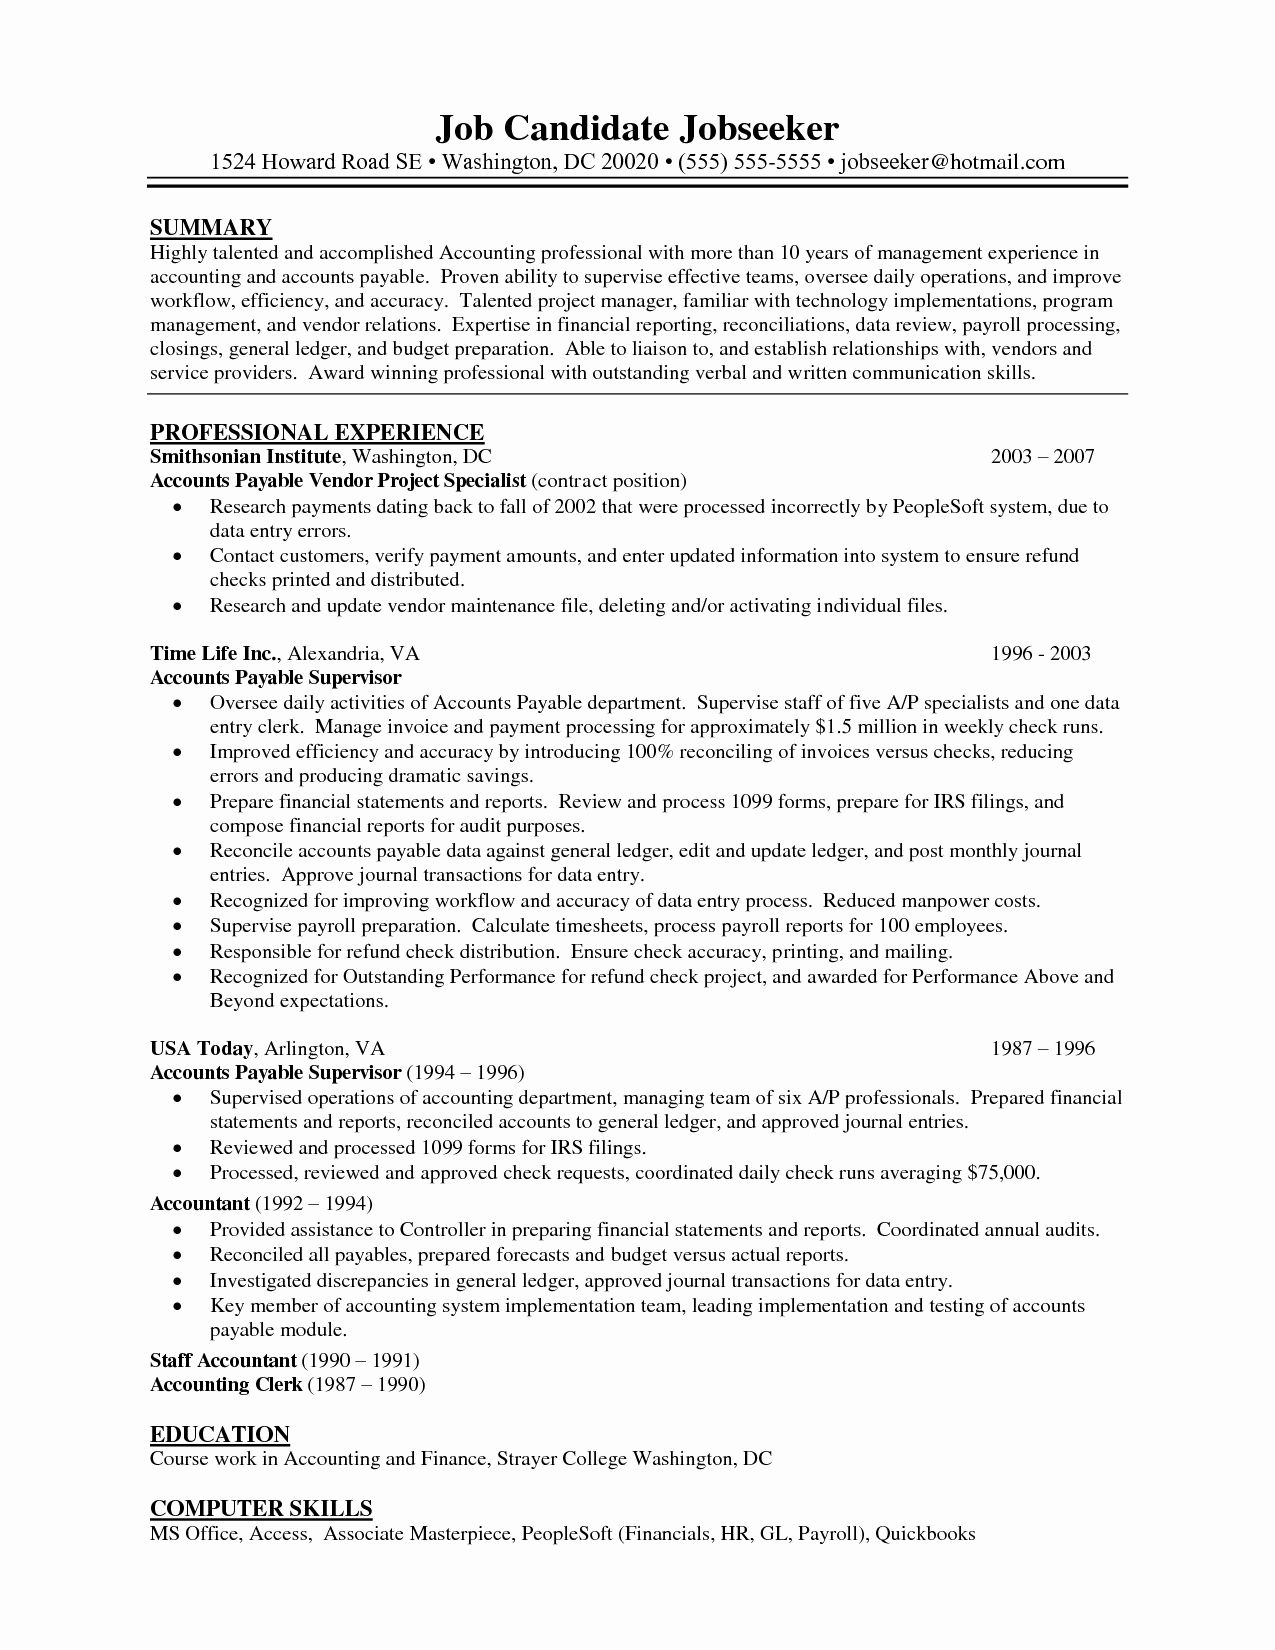 Warehouse Resume Objective Examples New Warehouse Supervisor Resume Samples Objective Examples In 2020 Resume Objective Examples Accounts Payable Accounting